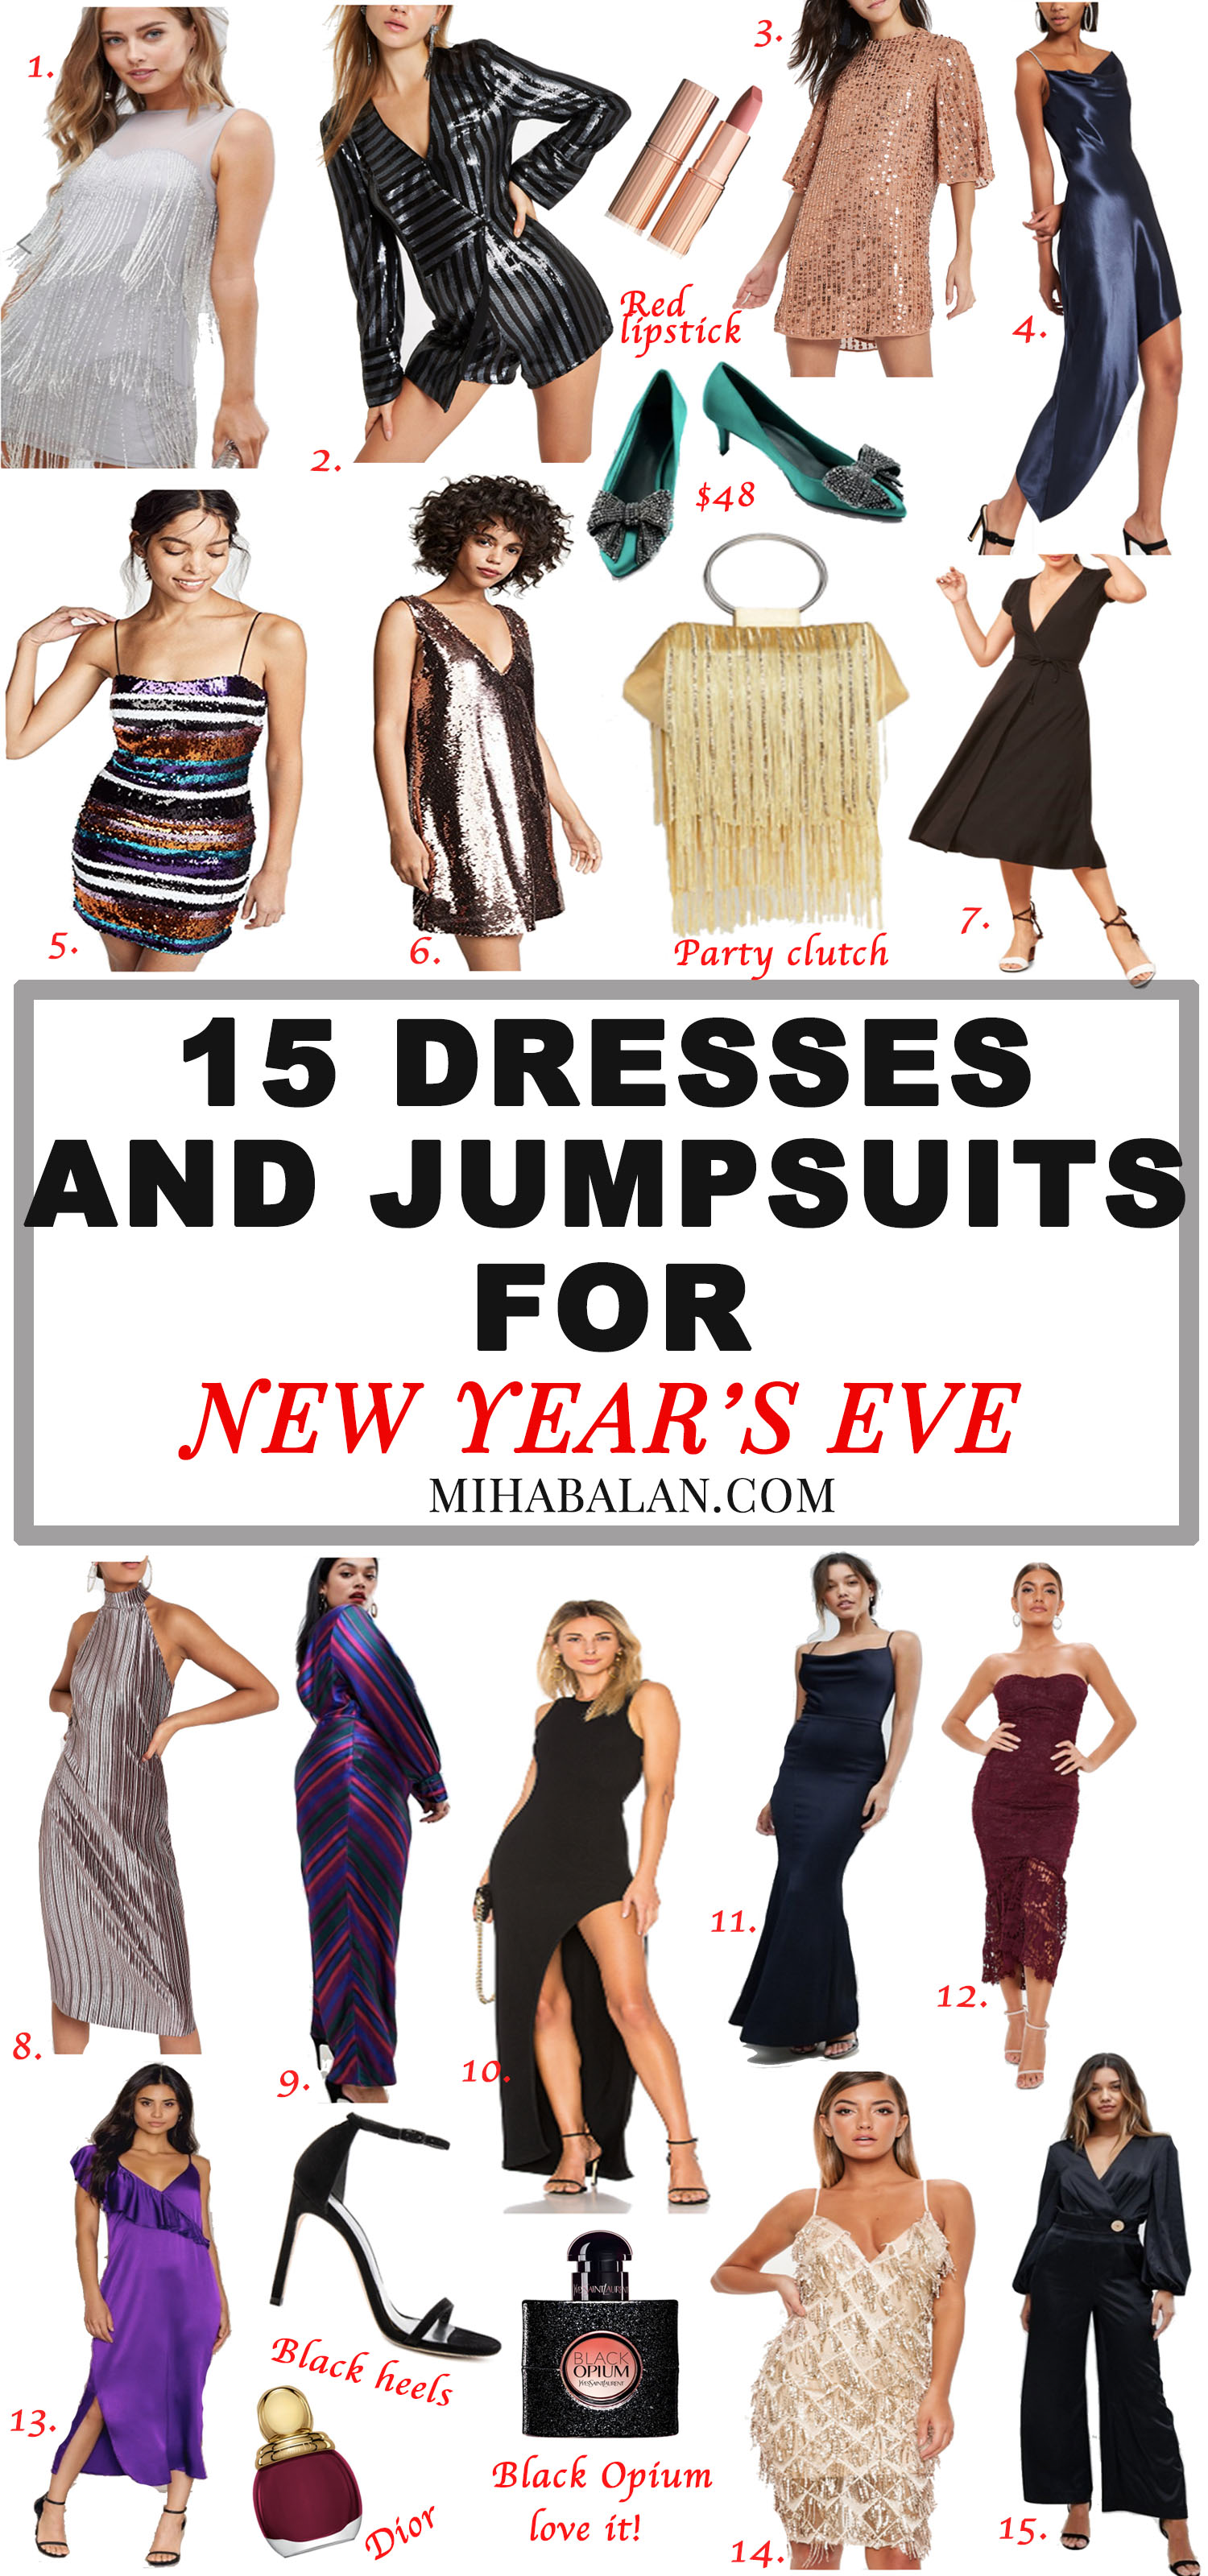 15 perfect dresses and jumpsuits for New Year's Eve, Festive Outfit Ideas, Glamour up for New Years Eve1